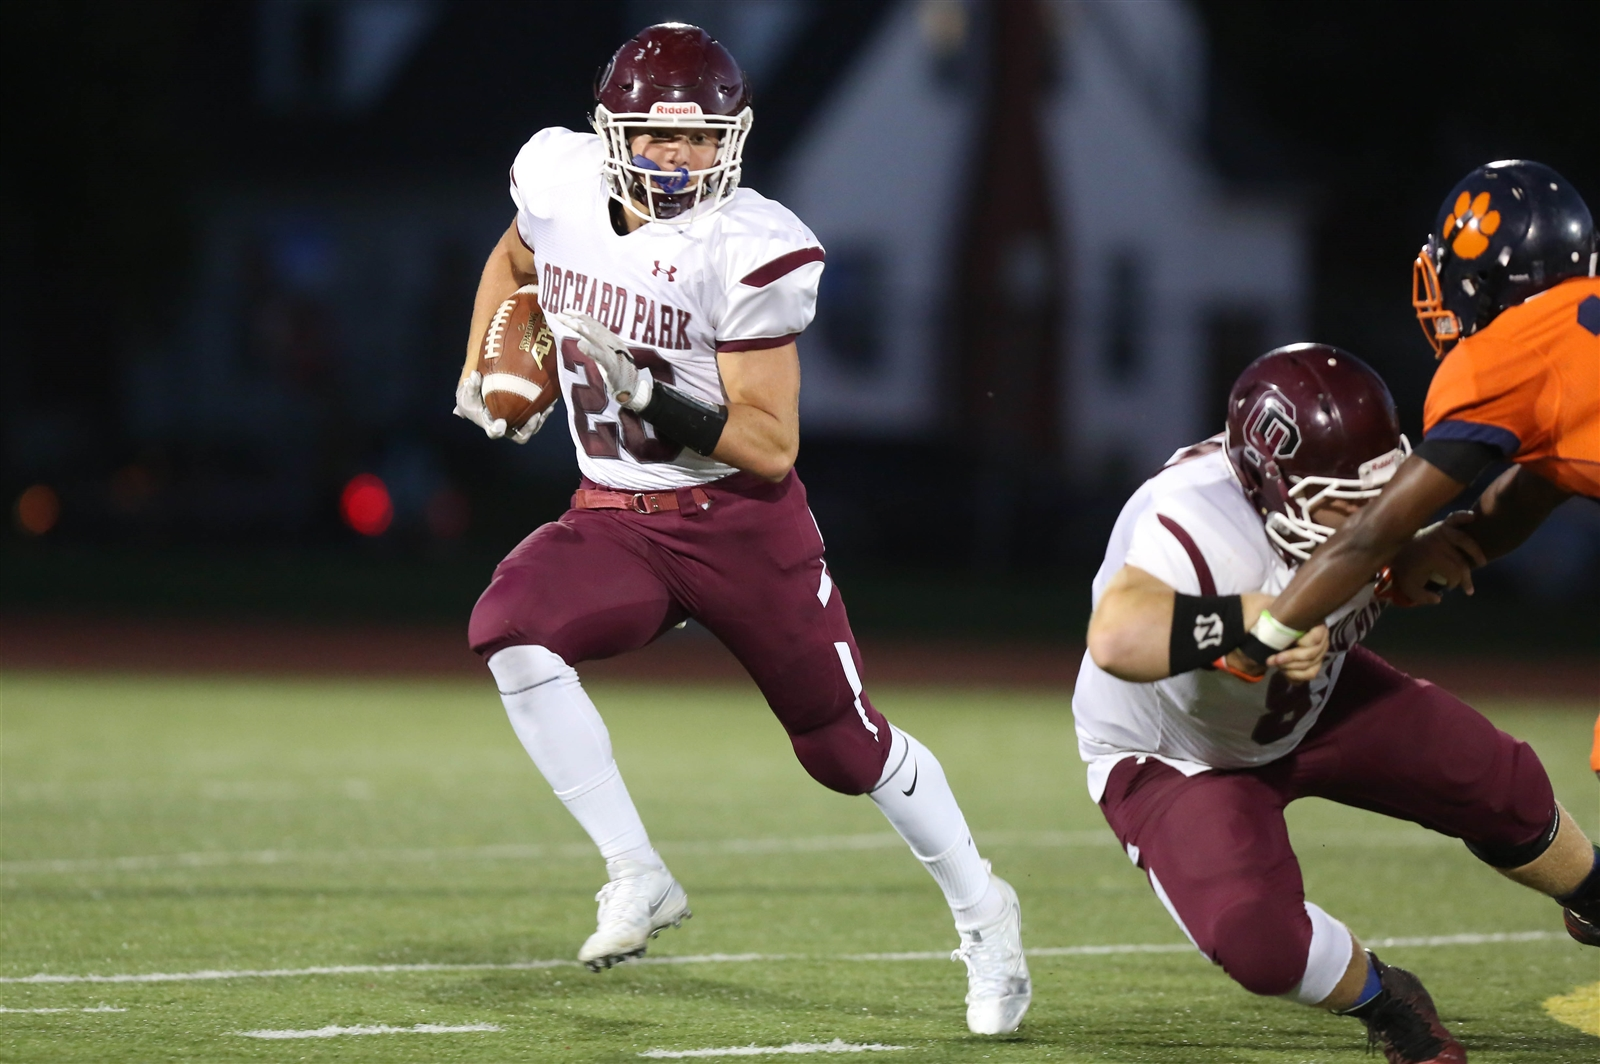 Josh Dahl and the defending Class AA champion Orchard Park Quakers. (Dave DeLuca/Special to The News)